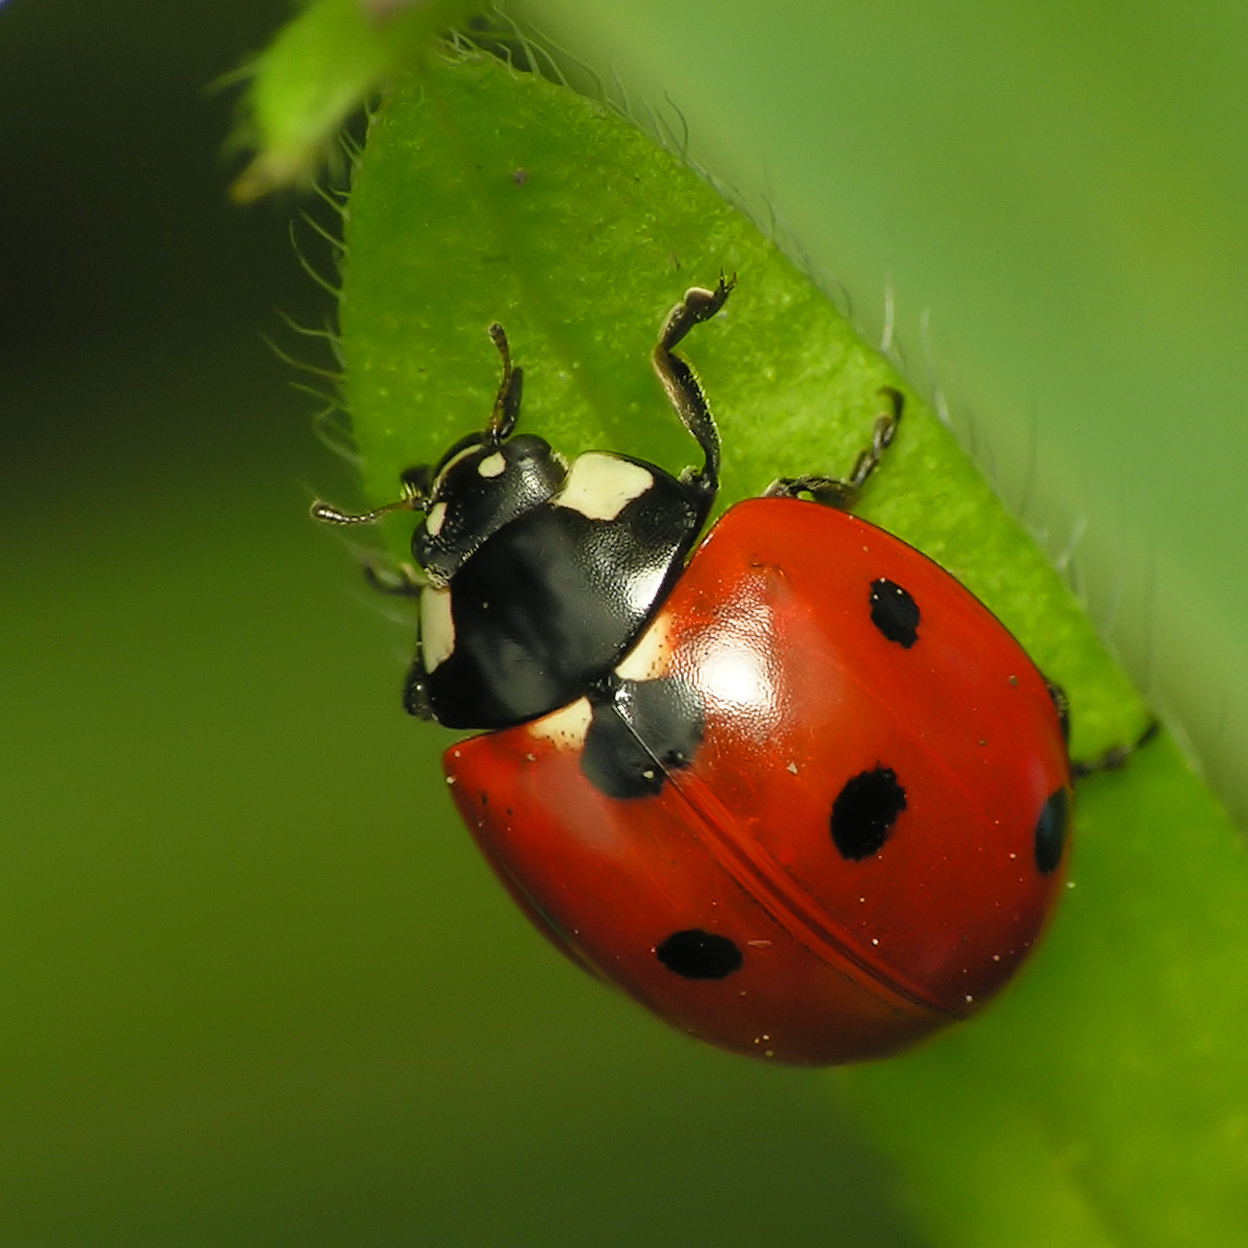 Http 13 Fun Facts Blogspot Com 2011 05 13 Lowdowns On Ladybugs Html